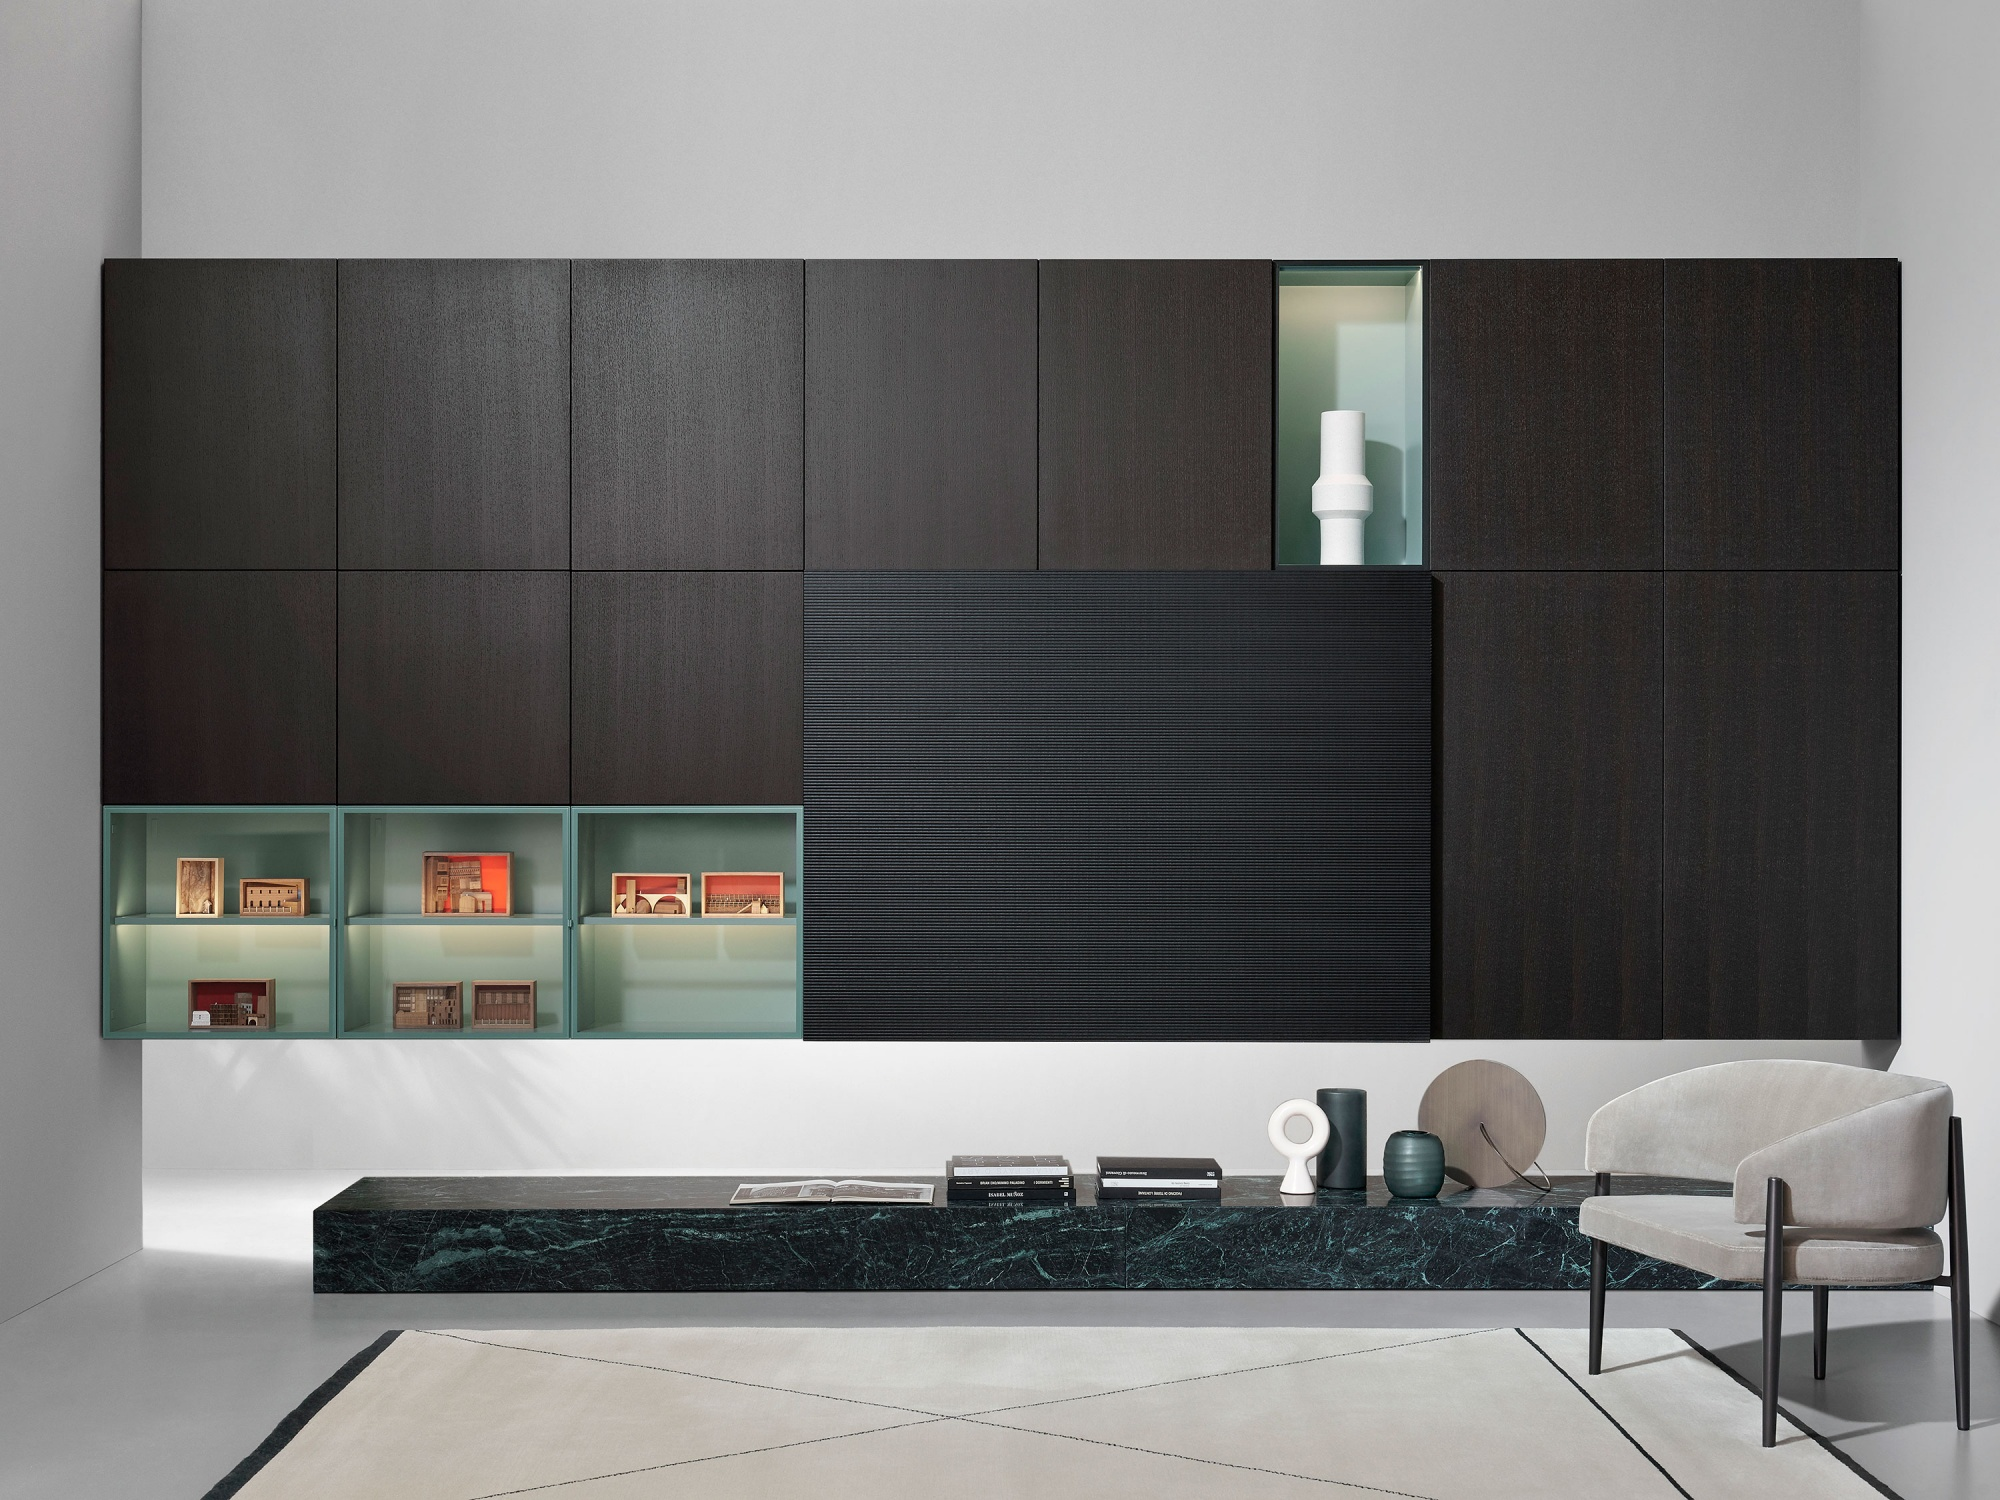 Porro, image:MODERN, designed by: Piero Lissoni + CRS -